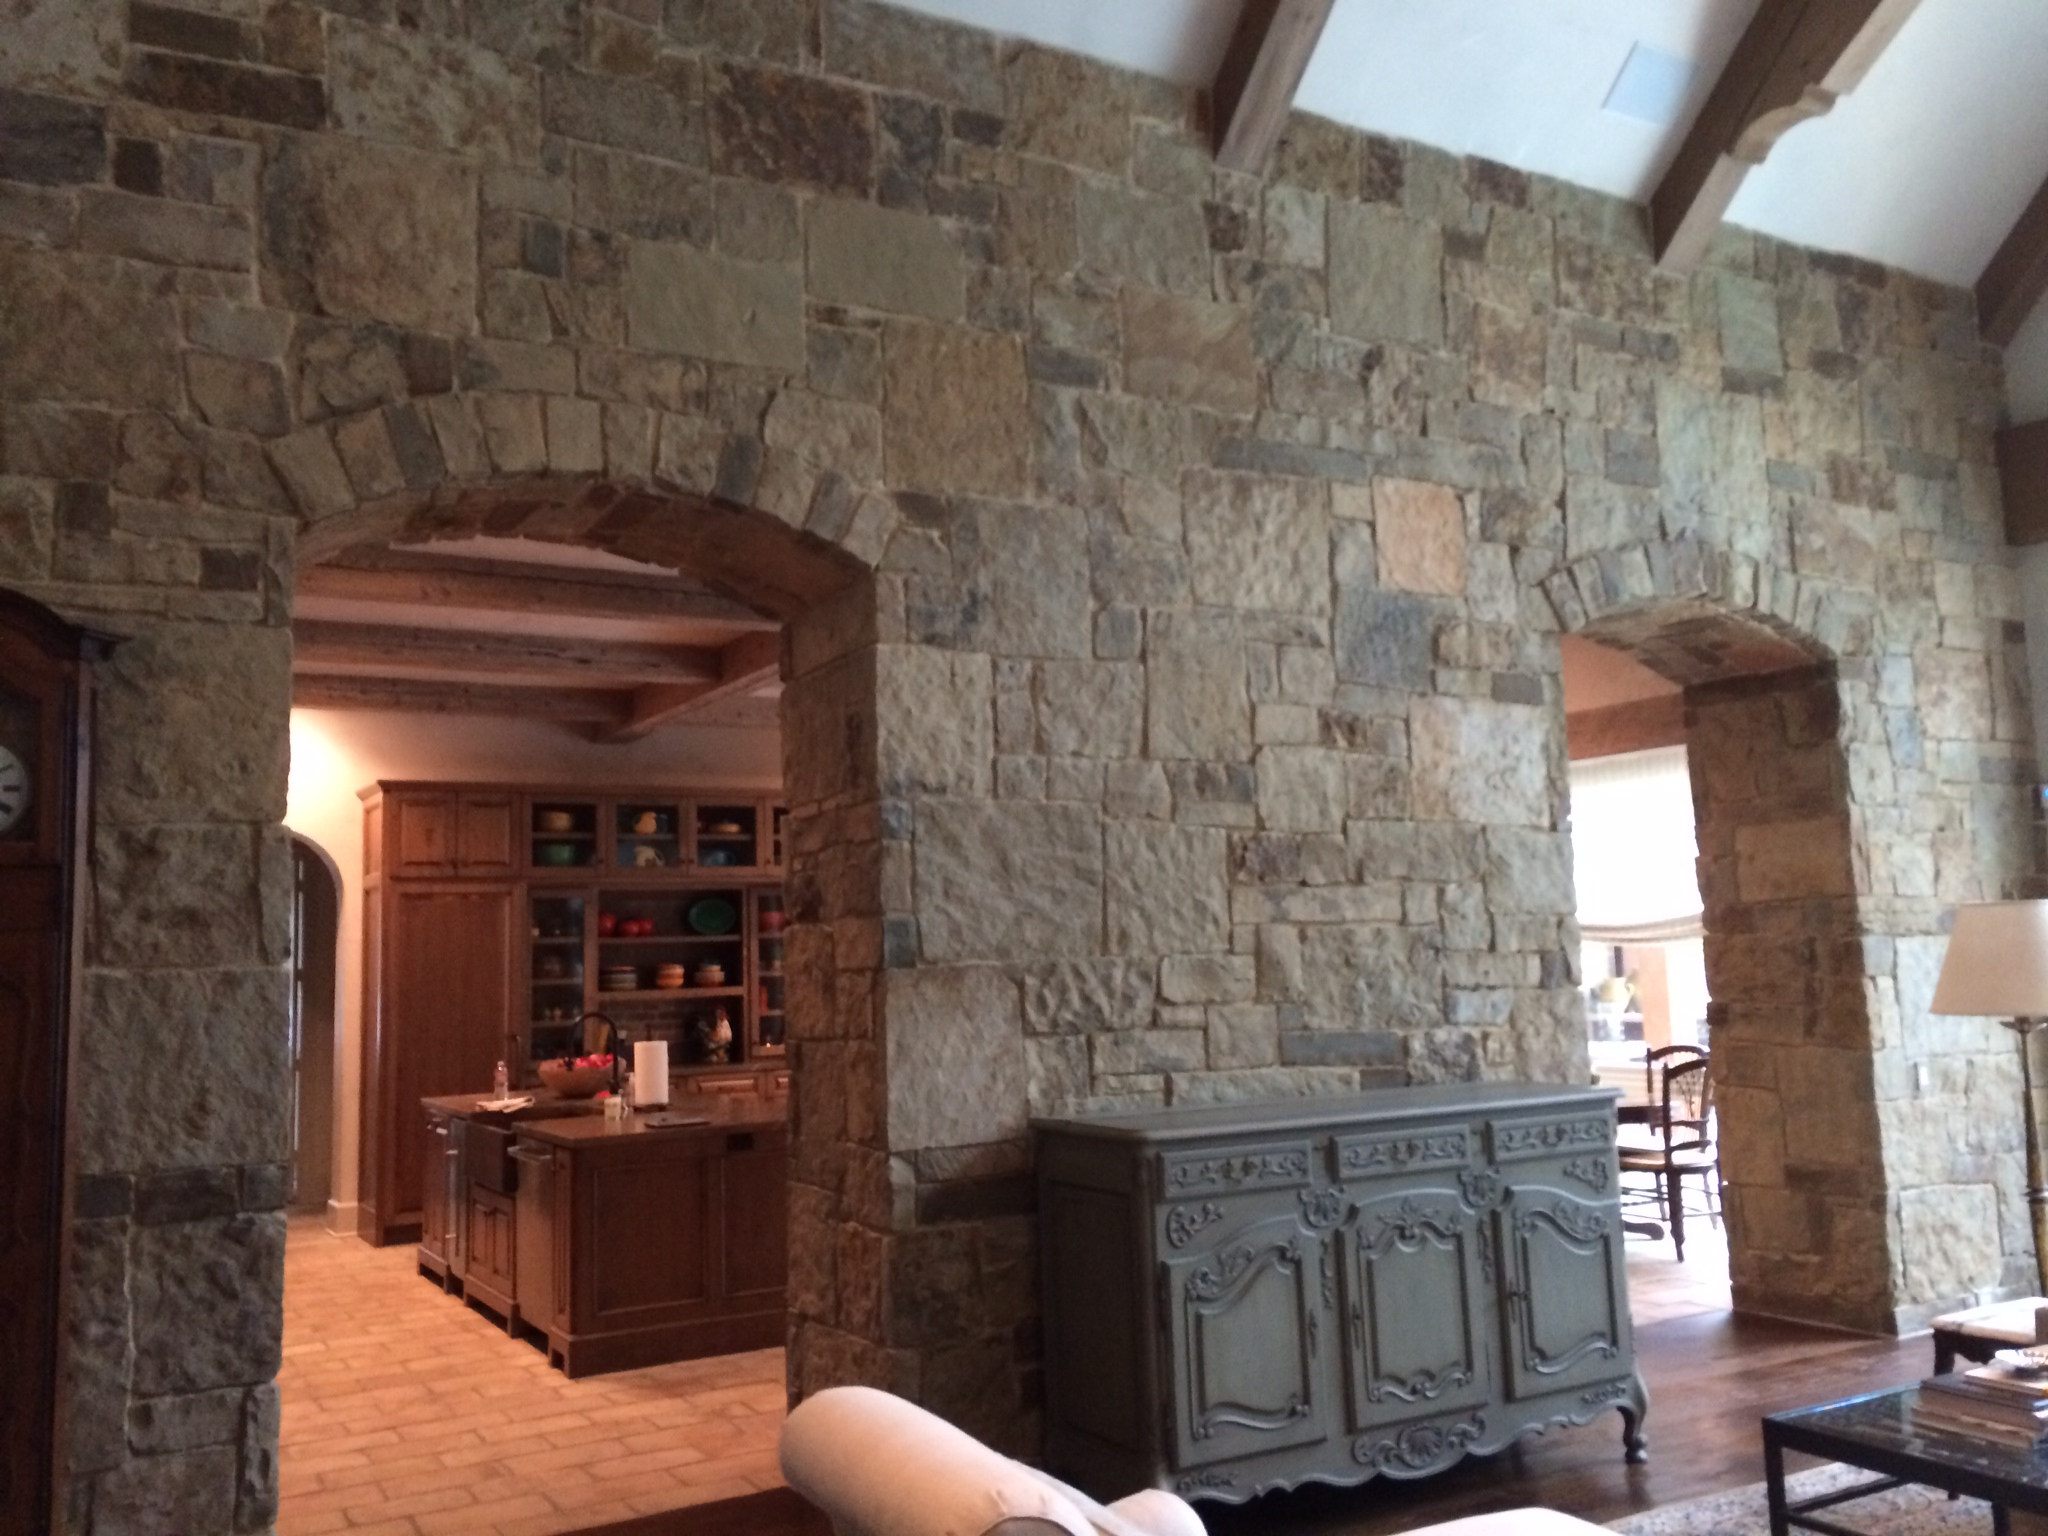 Natural stone interior wall south alabama brick company for Interior rock walls designs